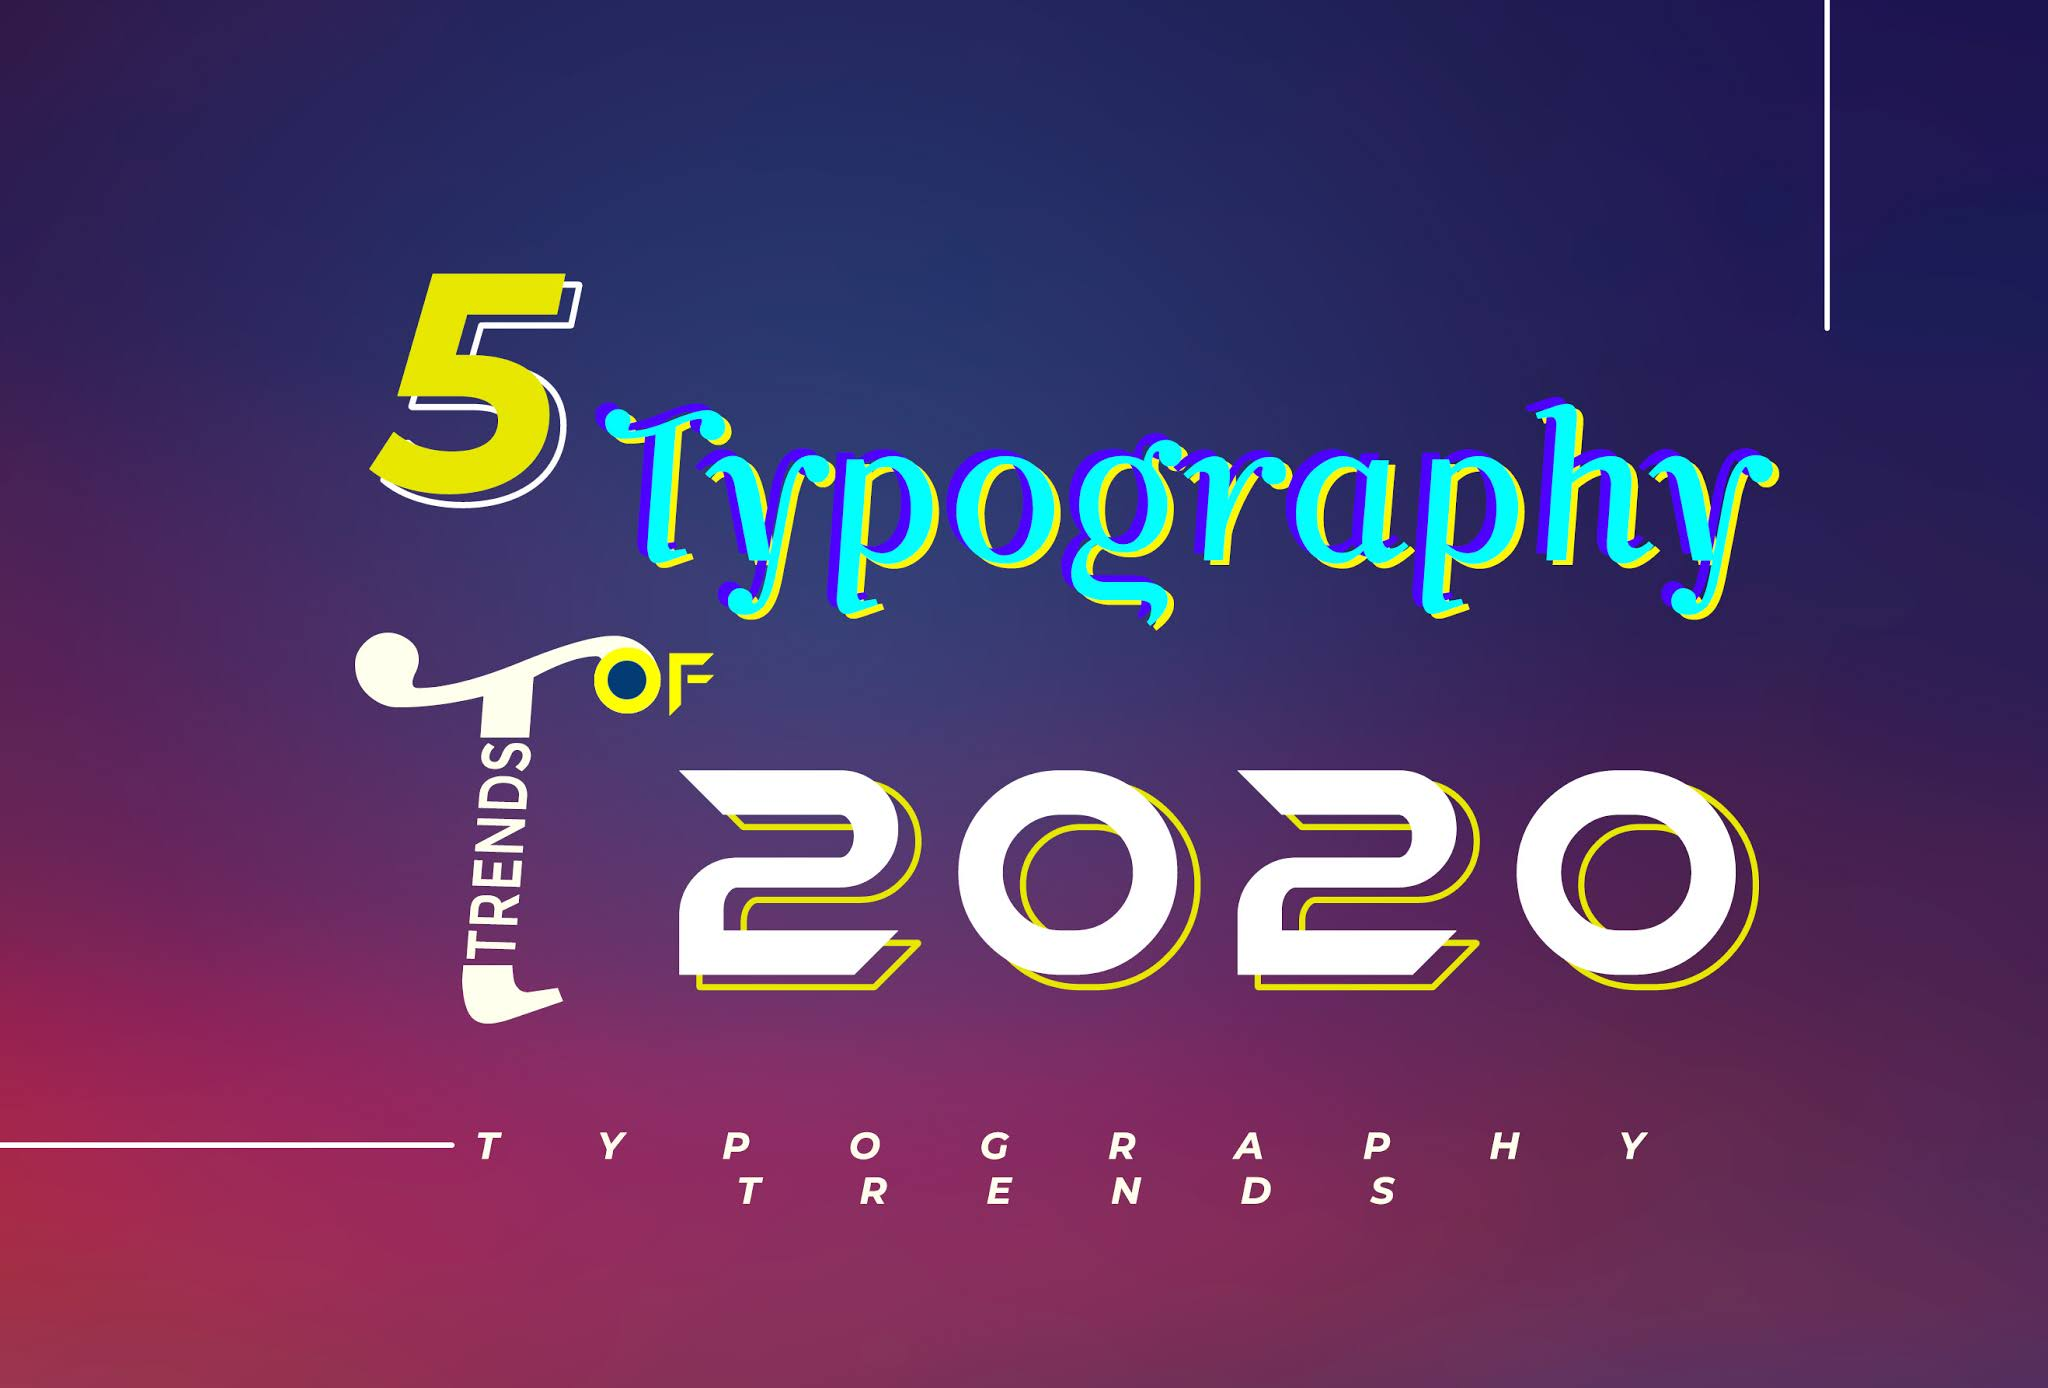 5 Typography Trends of 2020